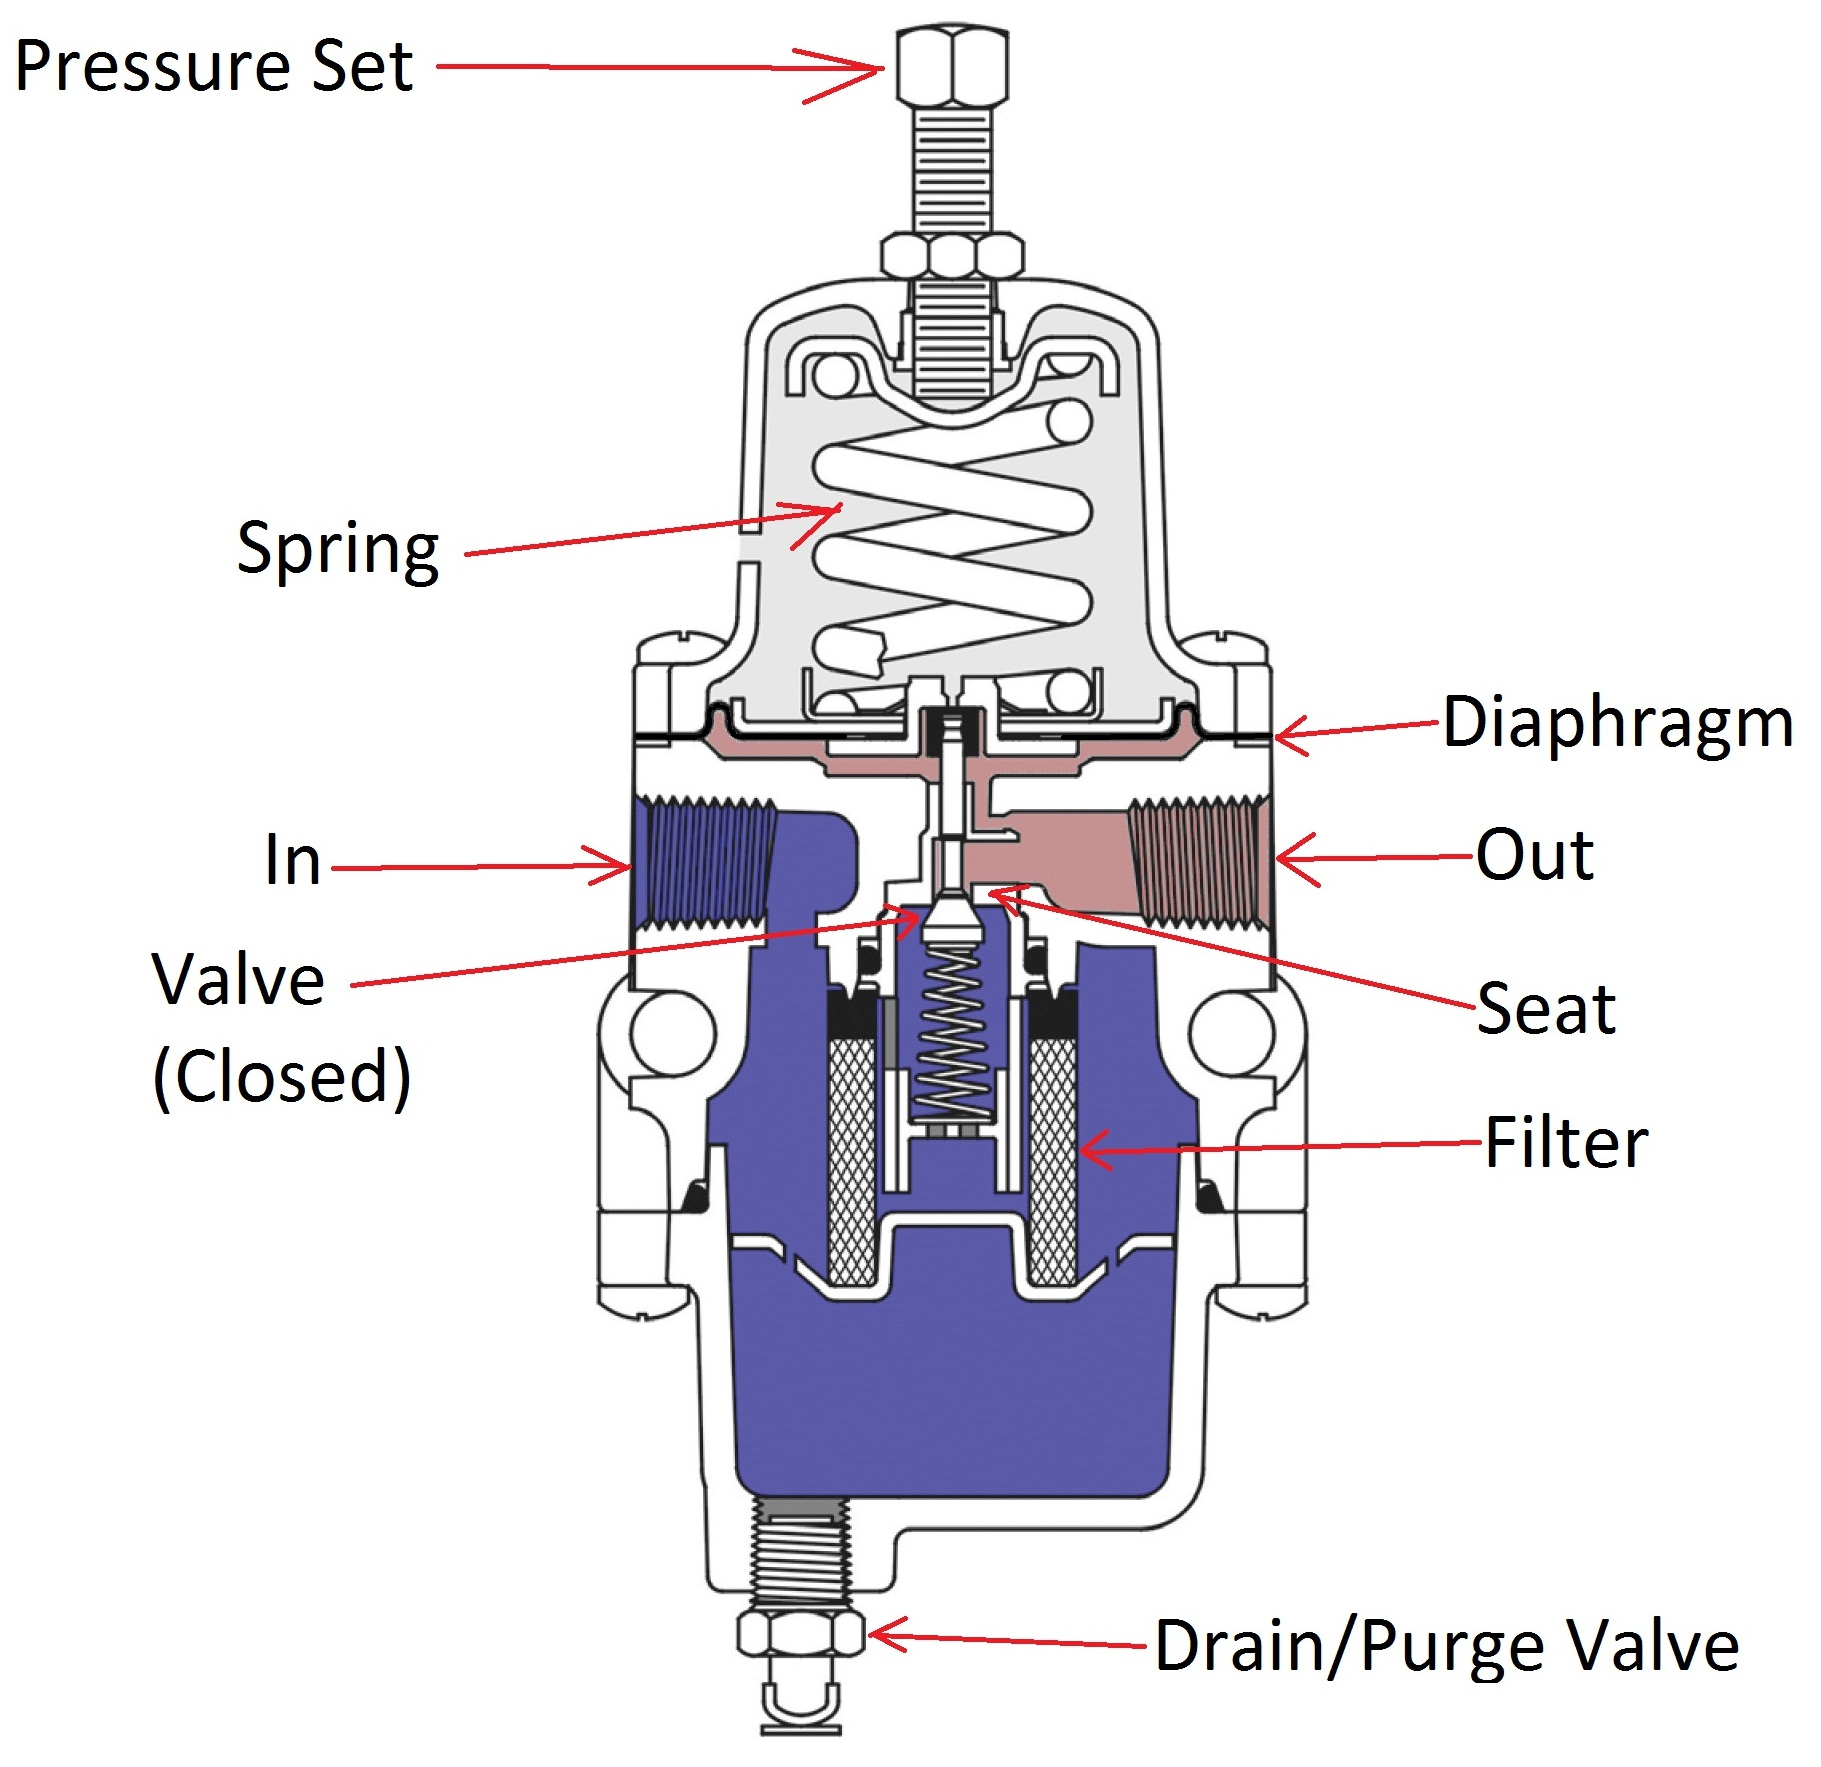 Control Valves How A Diaphragm Works